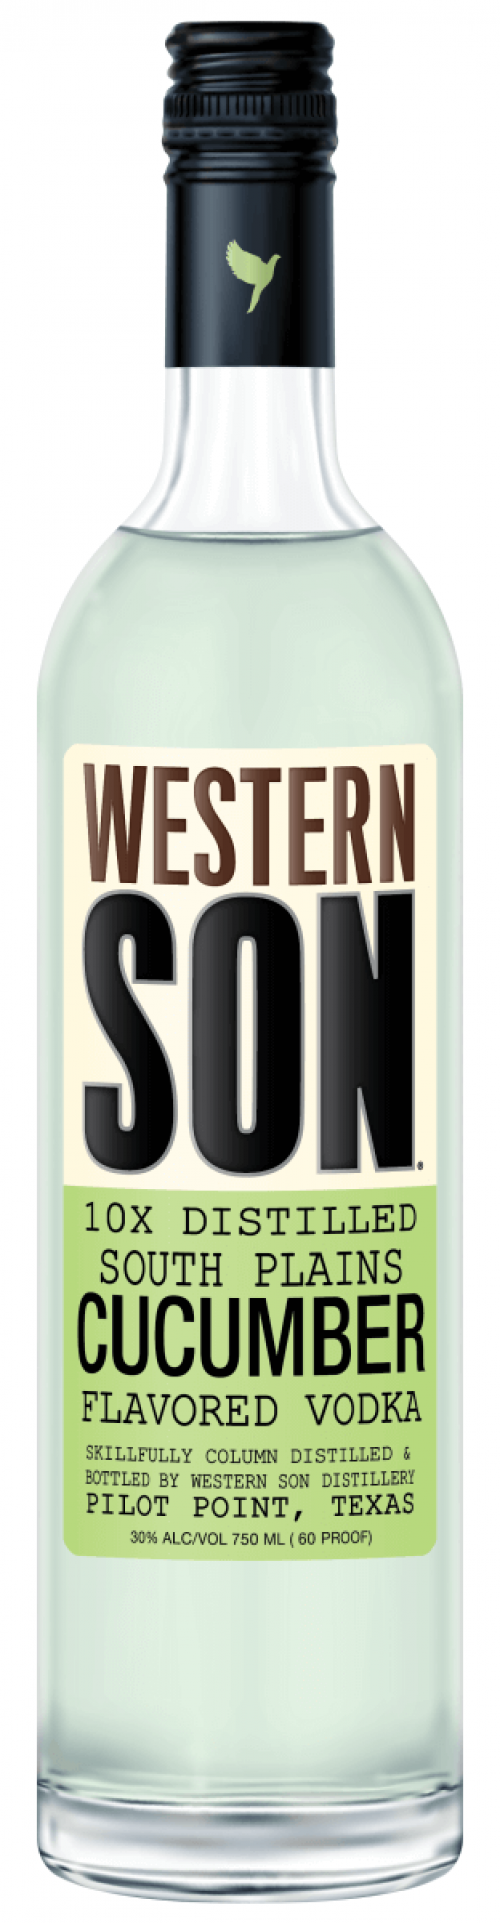 Western Son Cucumber Vodka 1L